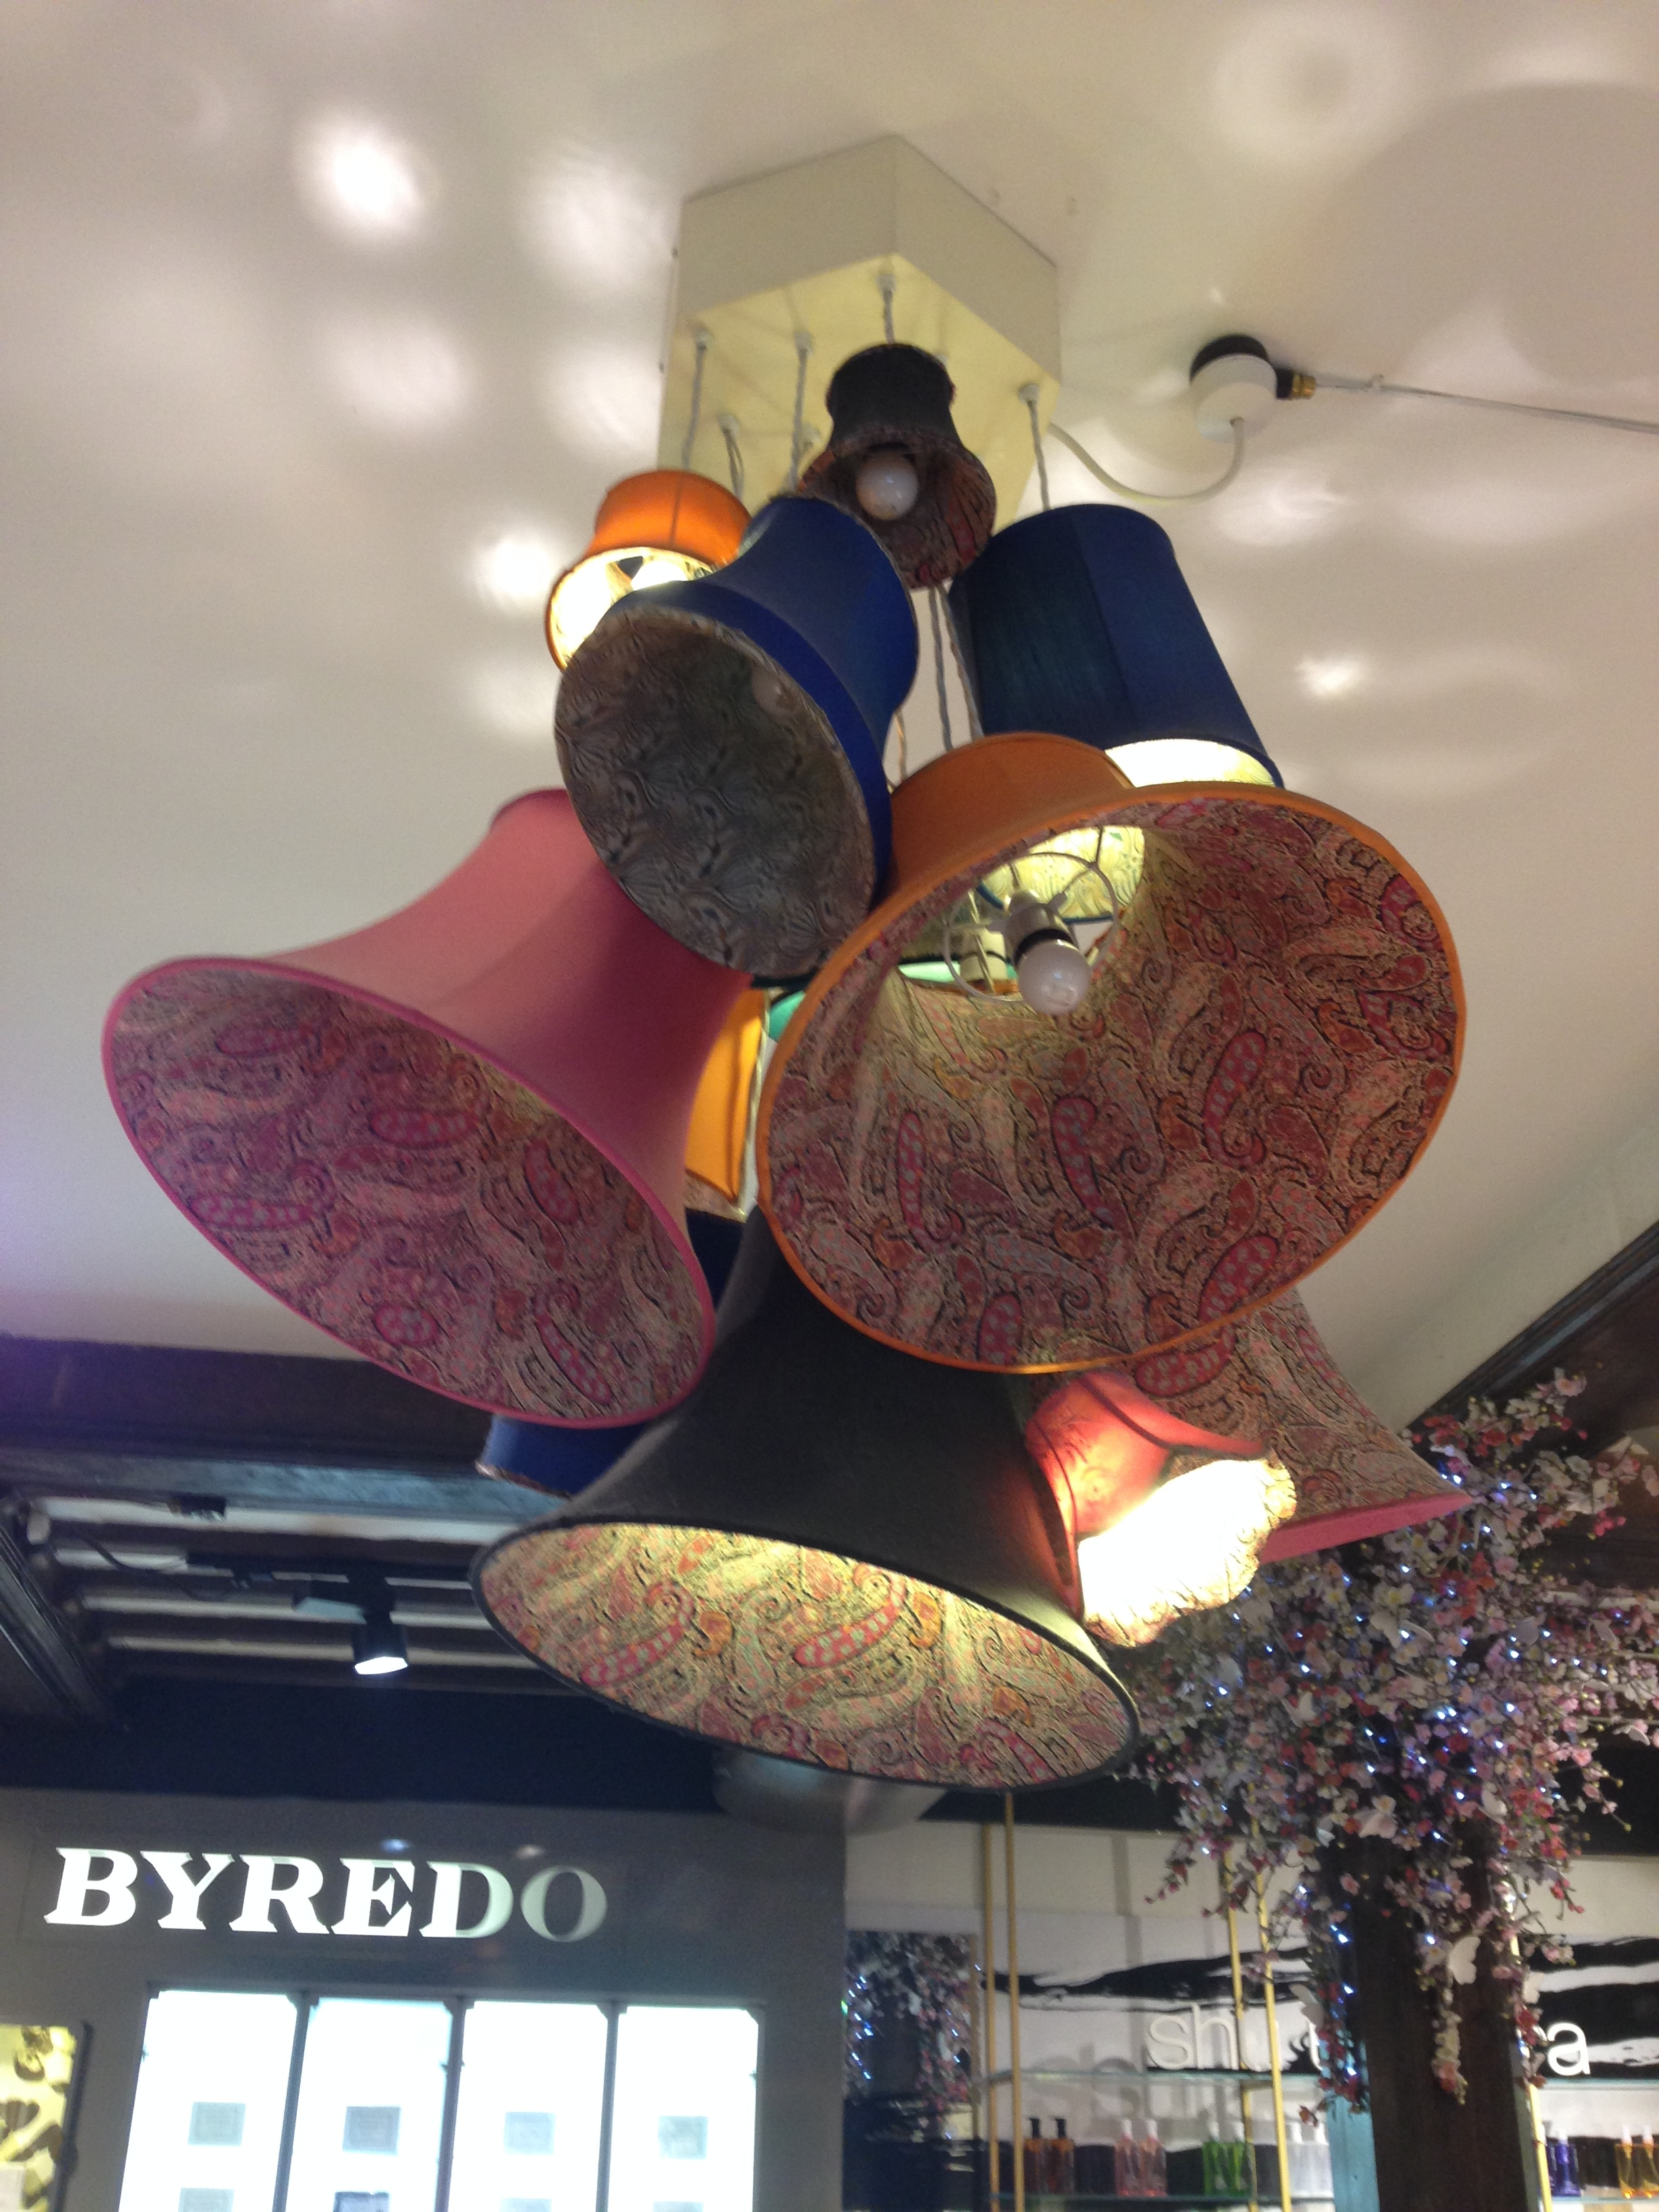 Liberty Lamp Shades. Why not i'll take 20!